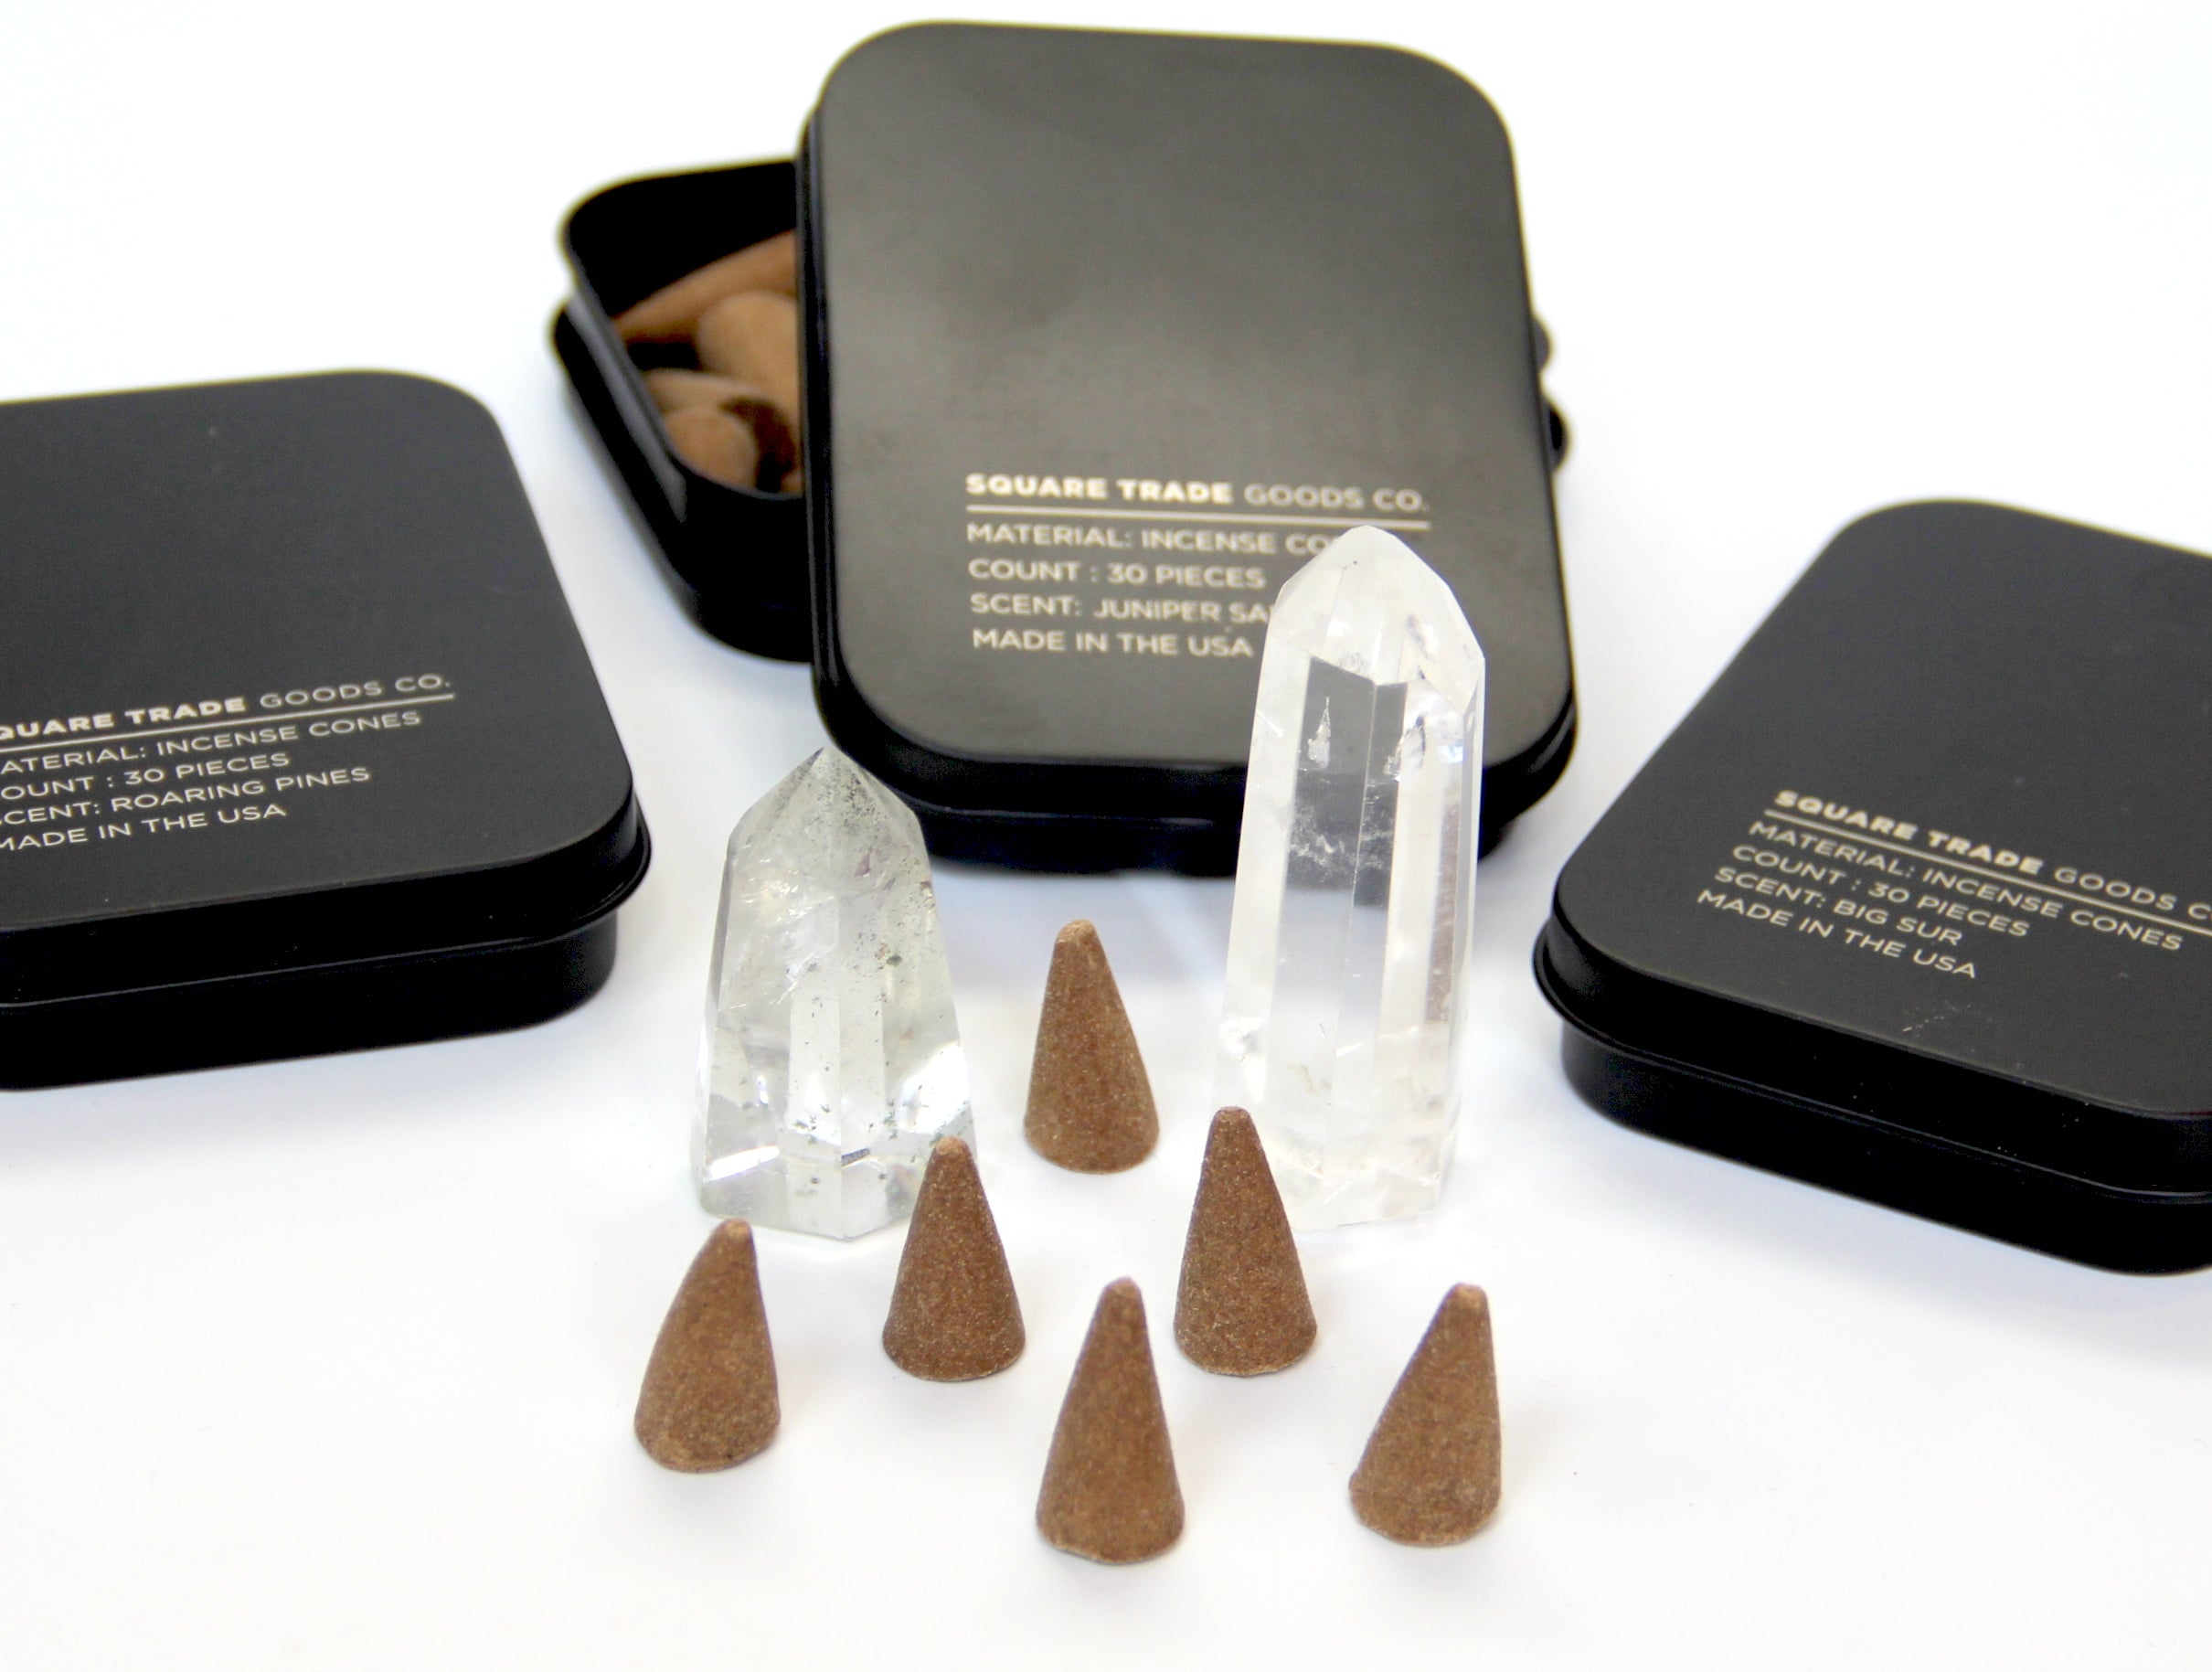 Square Trade Goods Cone Incense